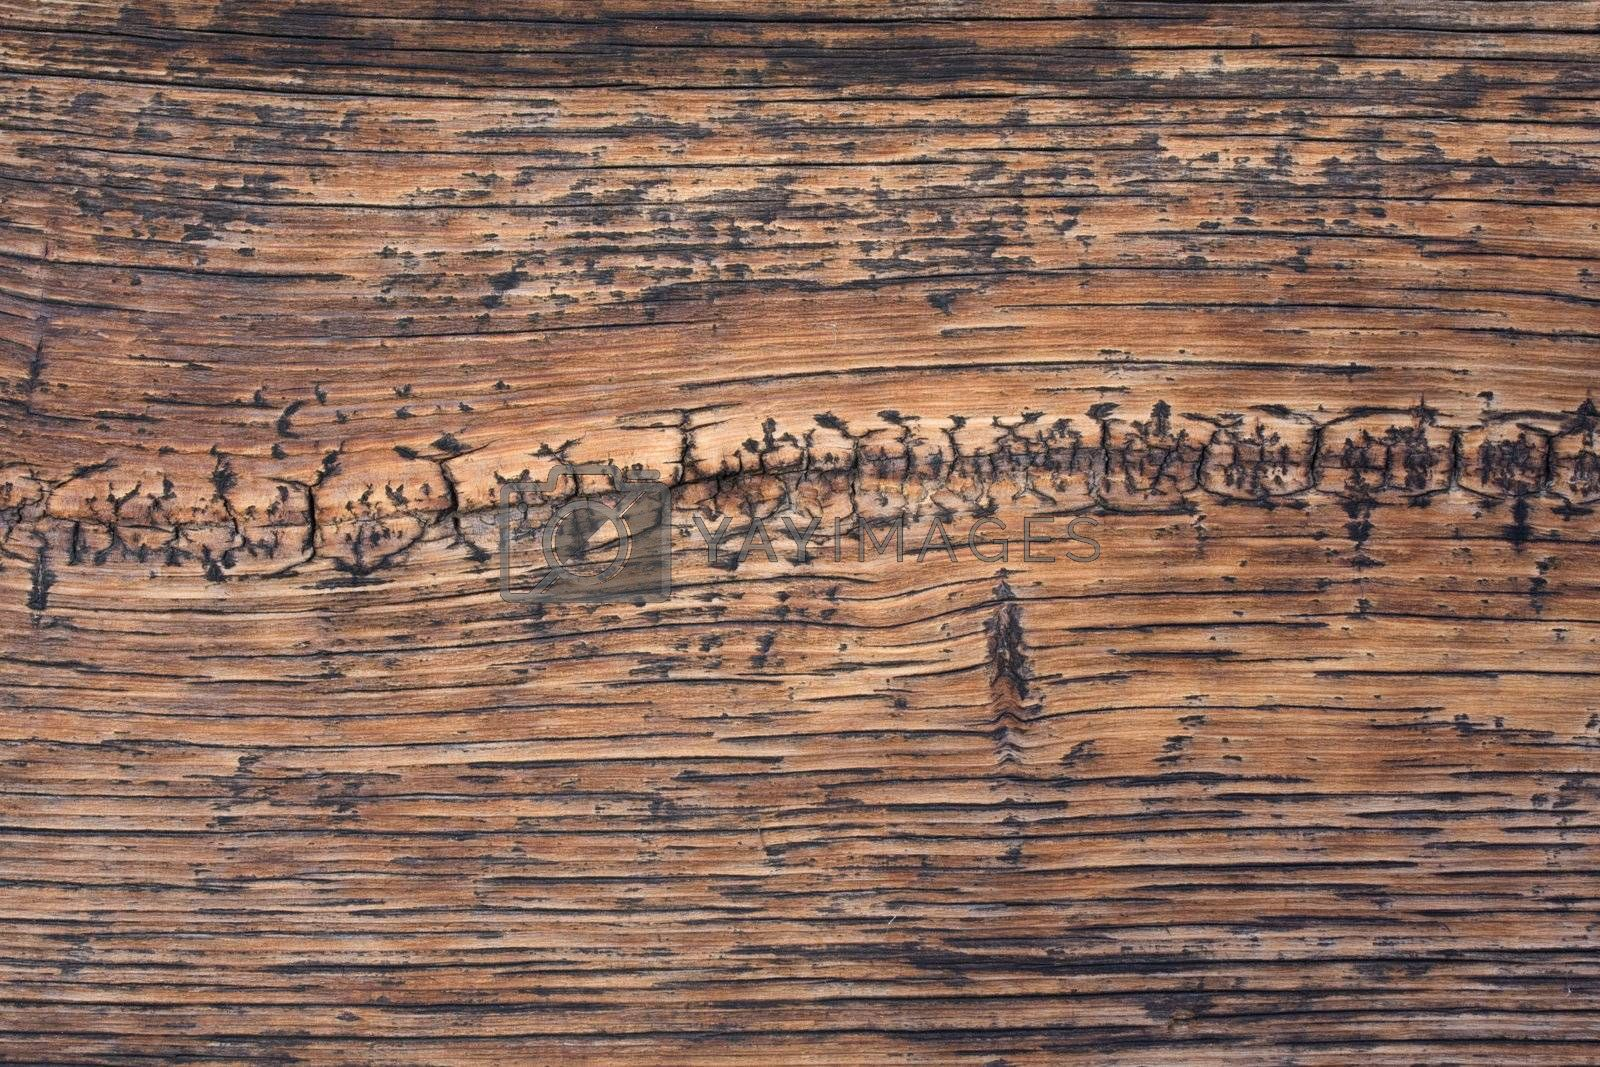 weathered wood background with wavy pattern and cracks